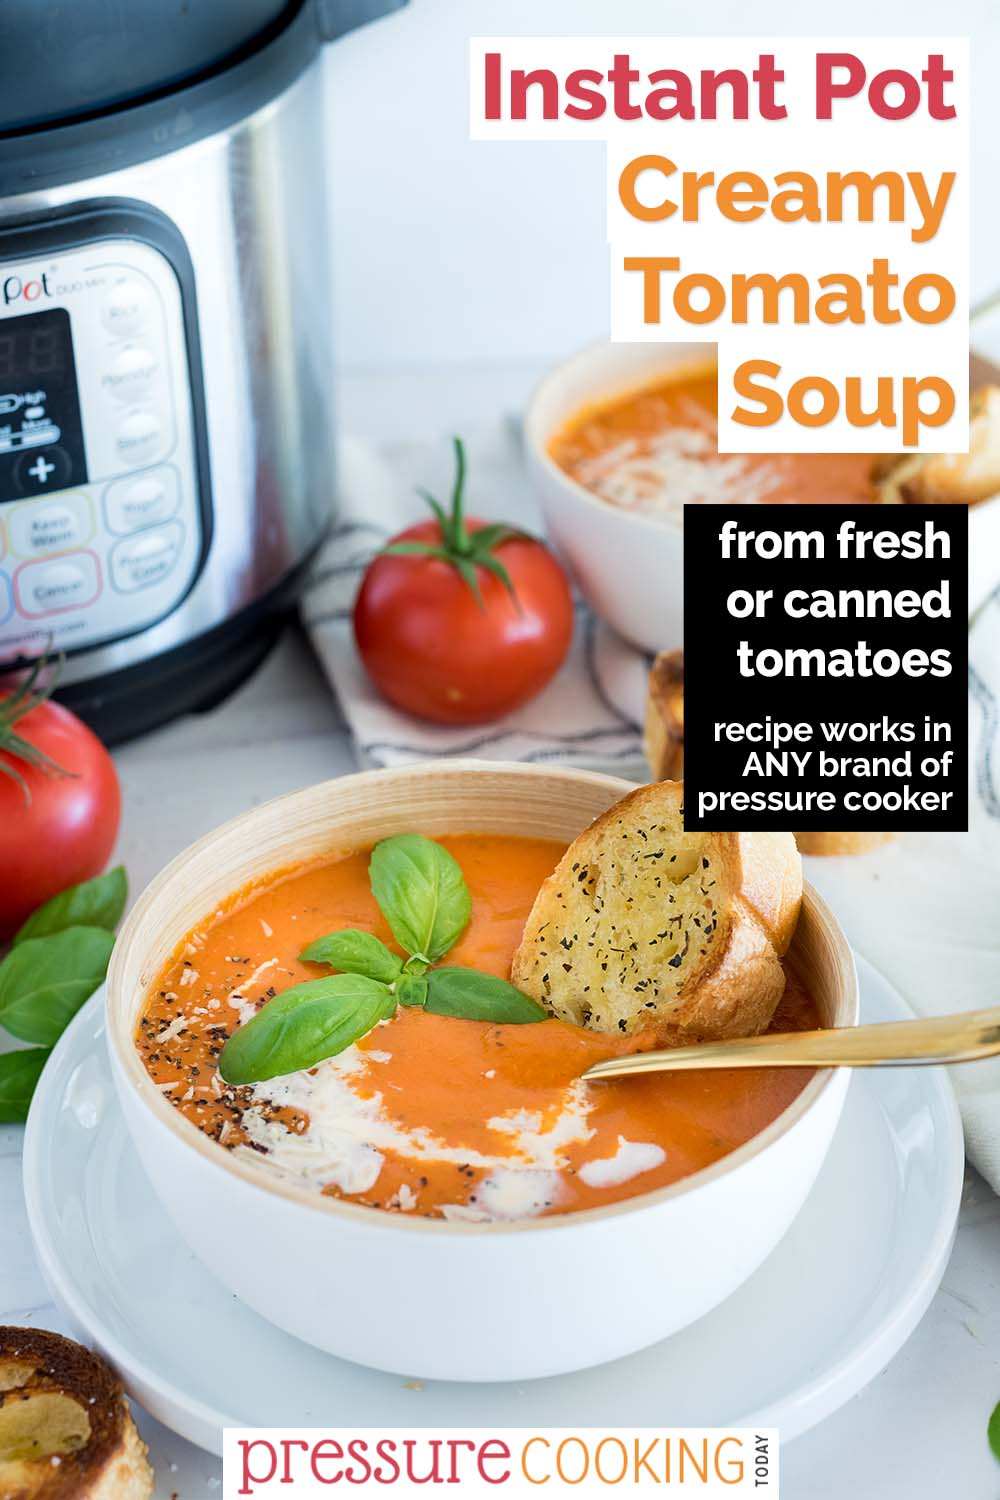 """Pinterest button that reads """"Instant Pot Creamy Tomato Soup: from fresh or canned tomatoes"""" over a 45 degree image of a white bowl filled with tomato basil soup, with an Instant Pot and fresh tomatoes in the background via @PressureCook2da"""